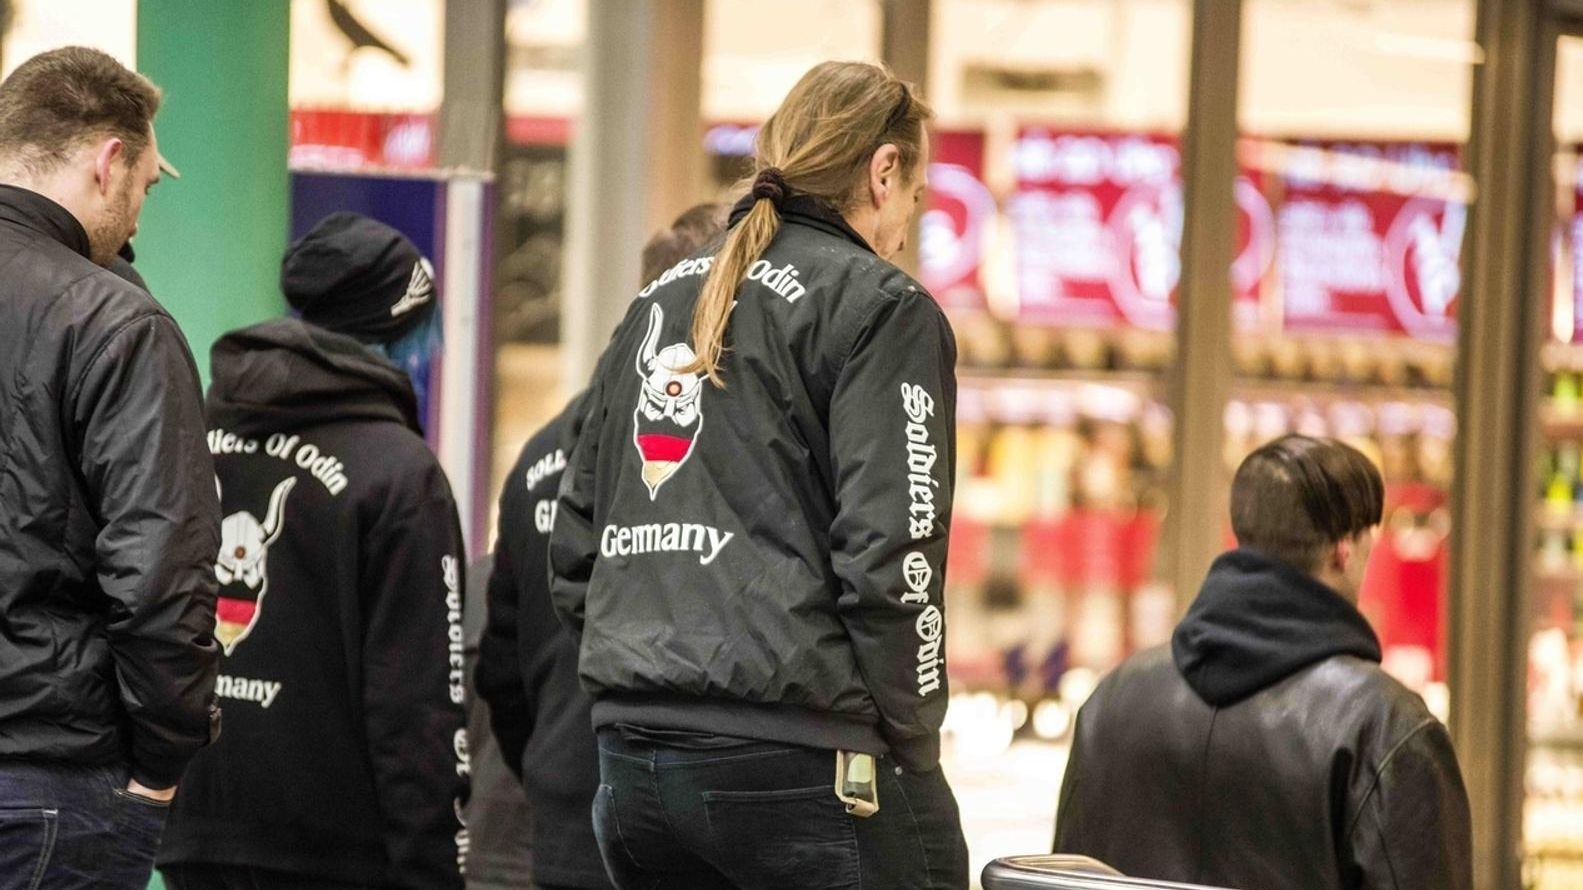 Soldiers of Odin in München